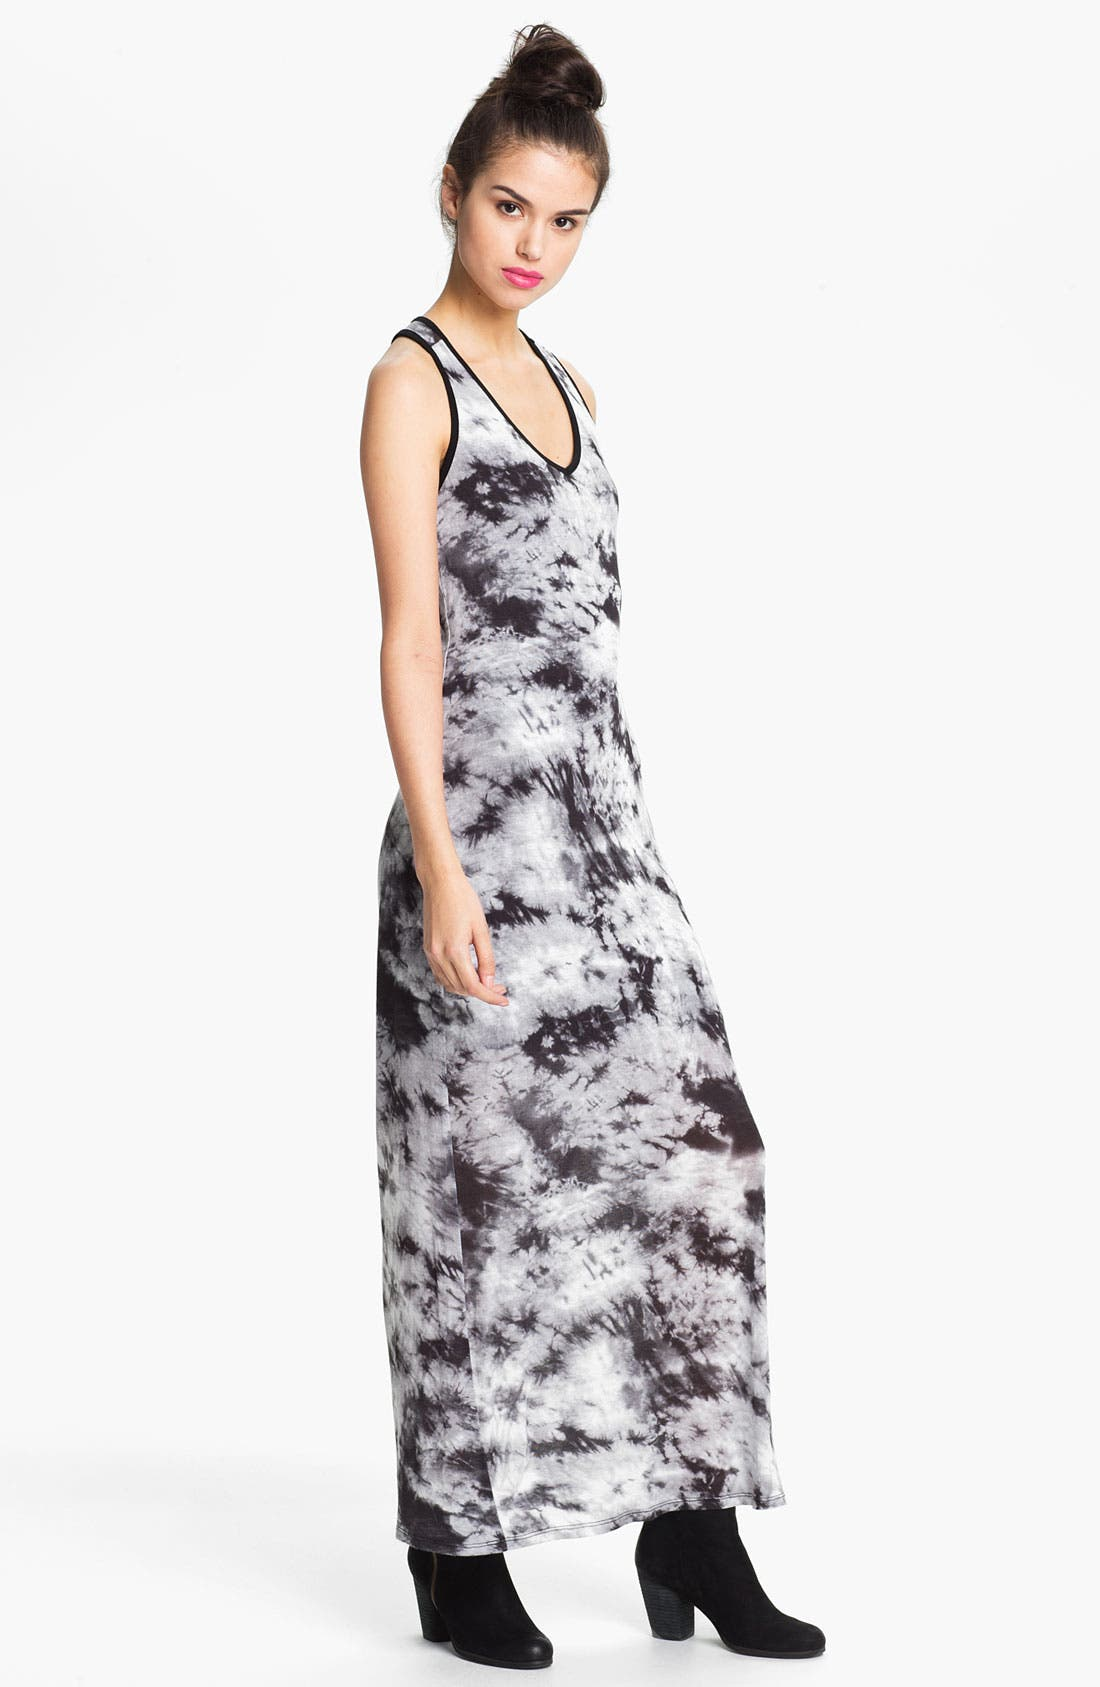 Alternate Image 1 Selected - Leola Couture Tie Dye Maxi Dress (Juniors)